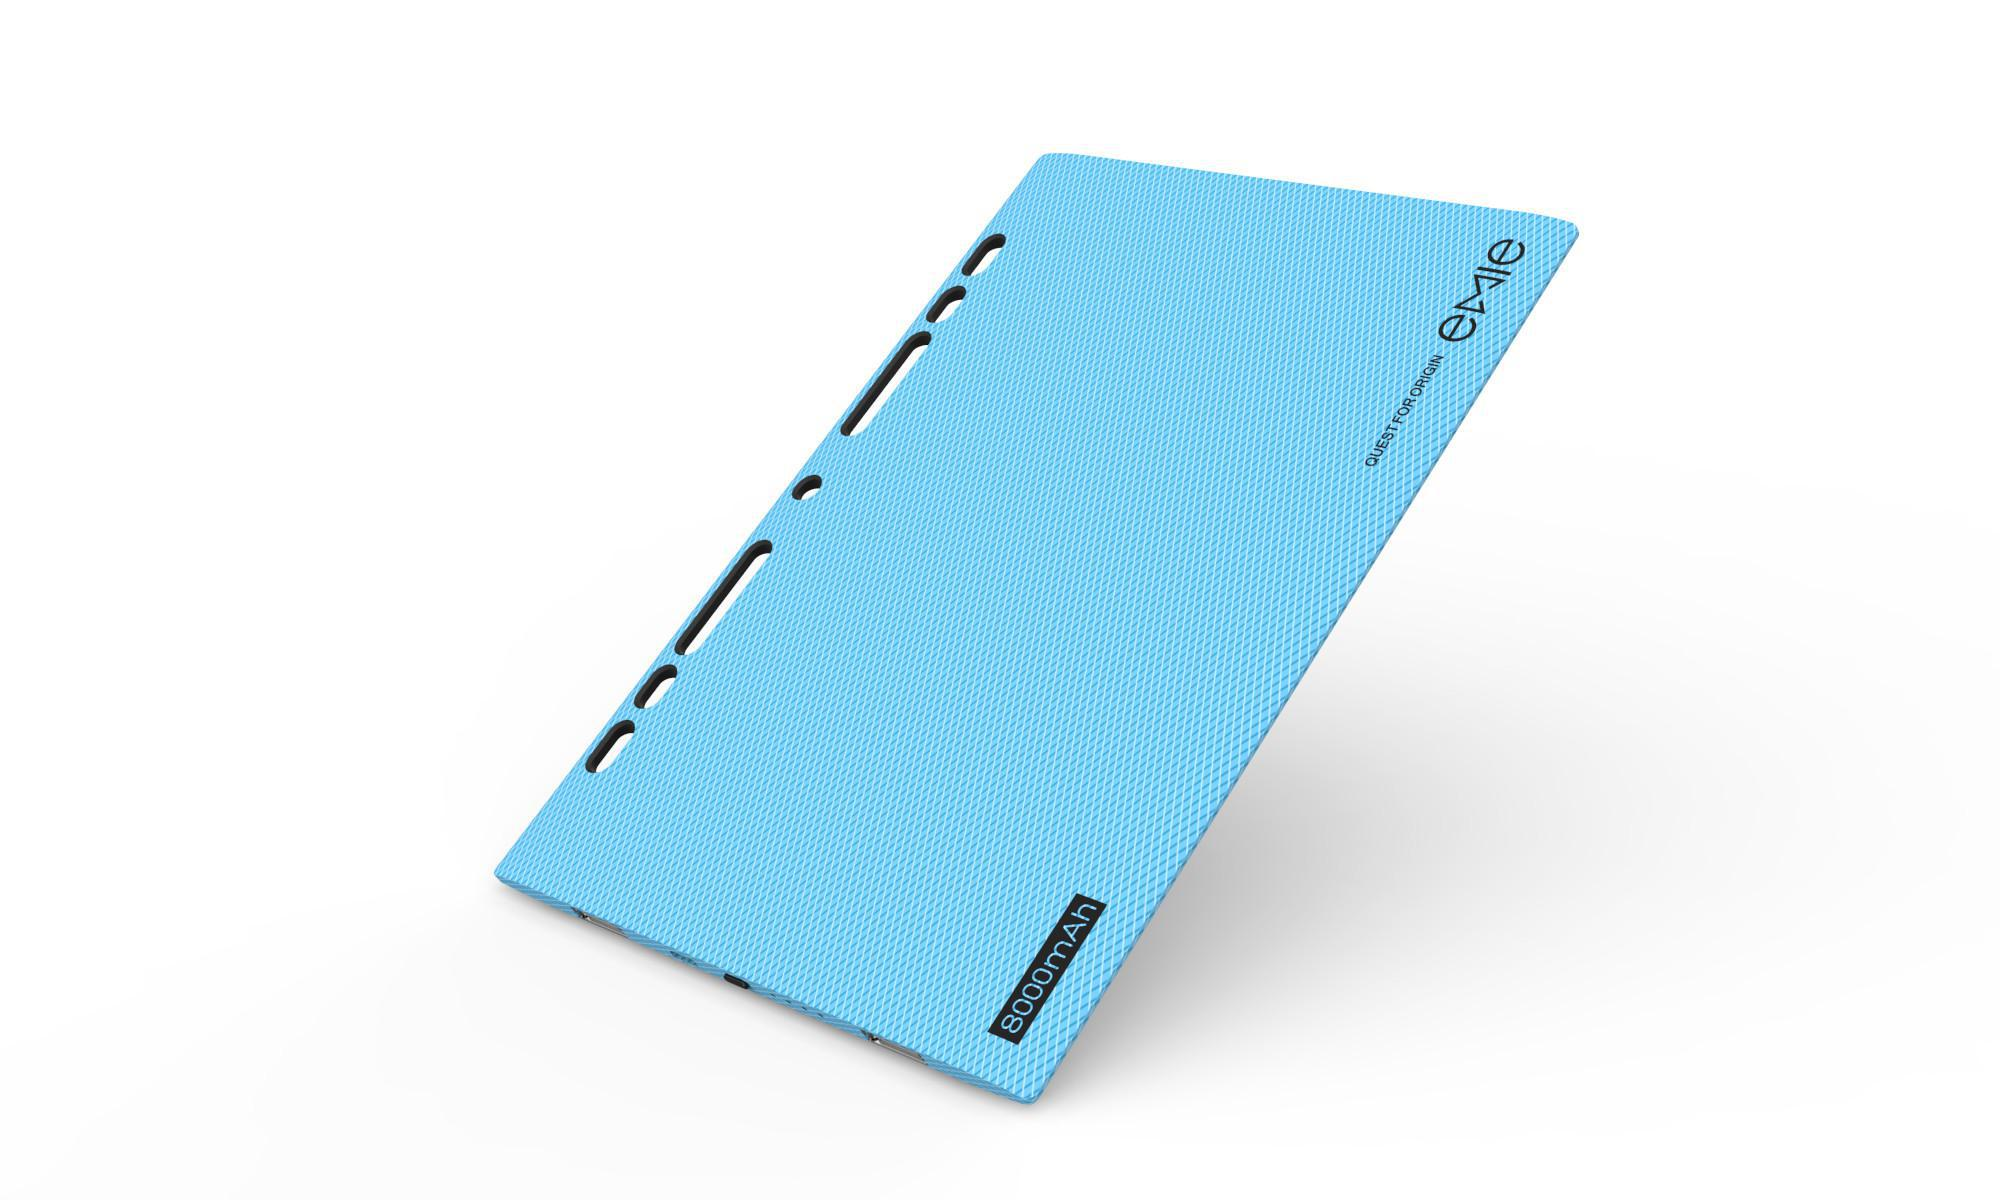 2. EMIE Power Blade Ultra Slim